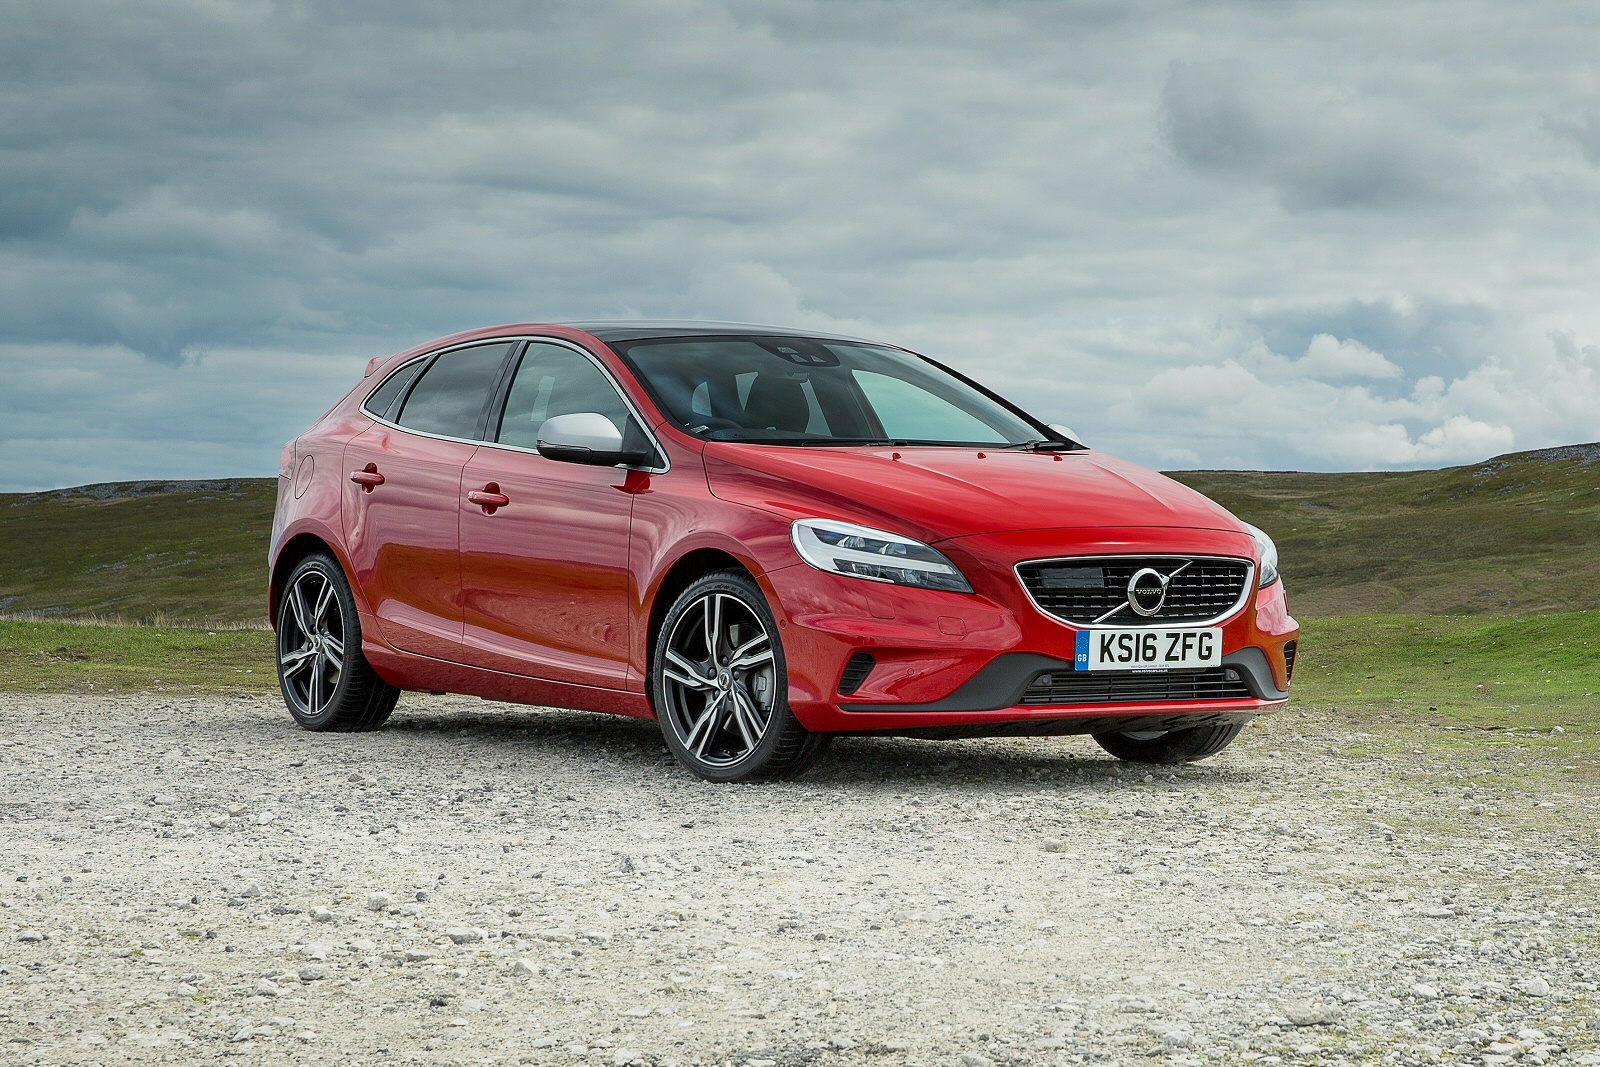 New Volvo V40 D3 [4 Cyl 150] Cross Country Pro 5Dr Geartronic Diesel Hatchback for Sale ...